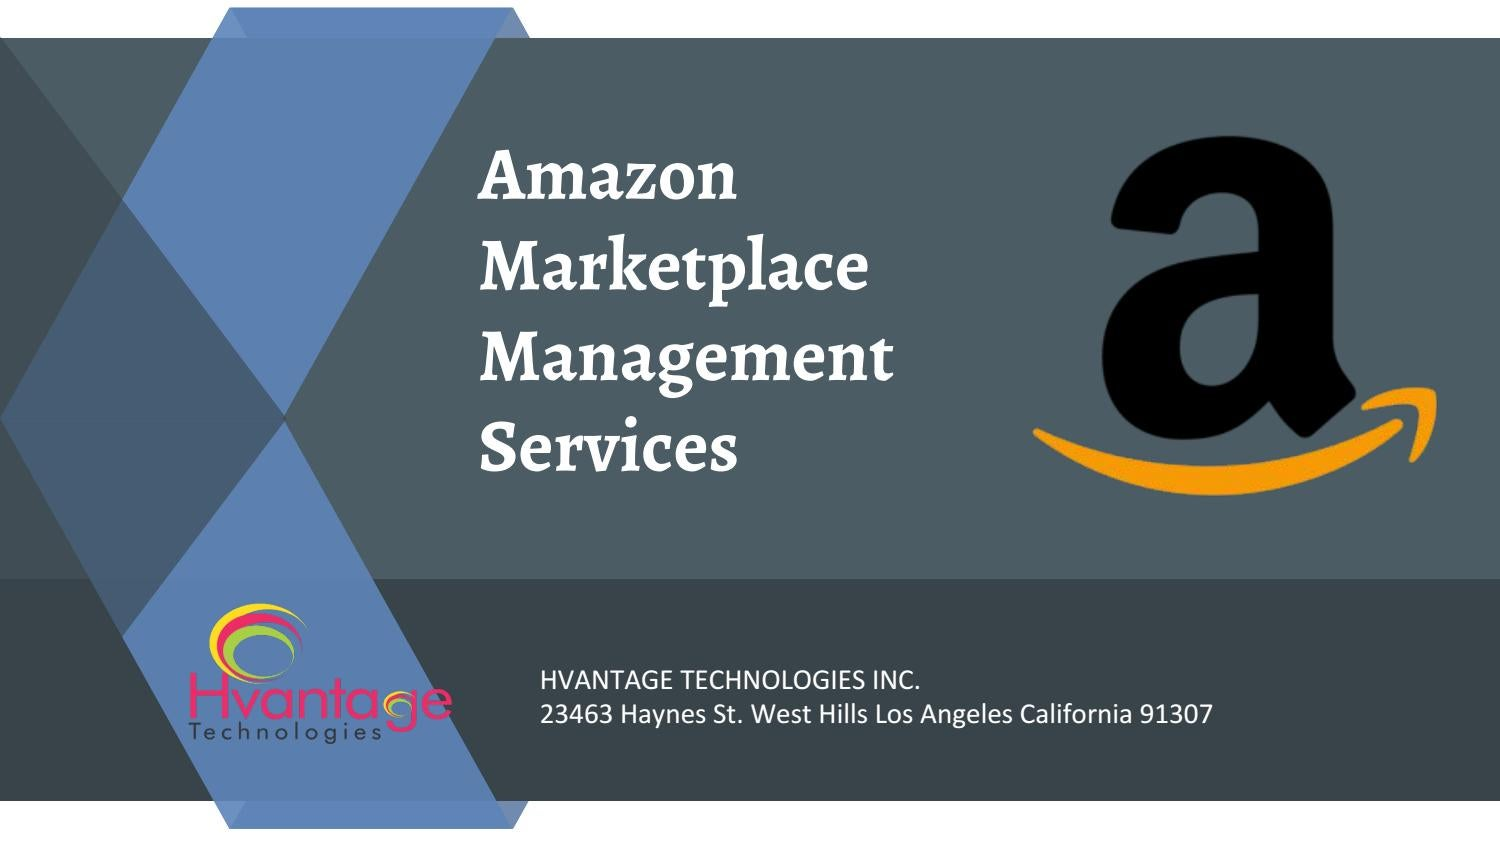 amazon inc inventory management Amazon will also charge a monthly overage fee on inventory exceeding storage limits sellers could previously rent unlimited space regardless of inventory management practices amazon shares.